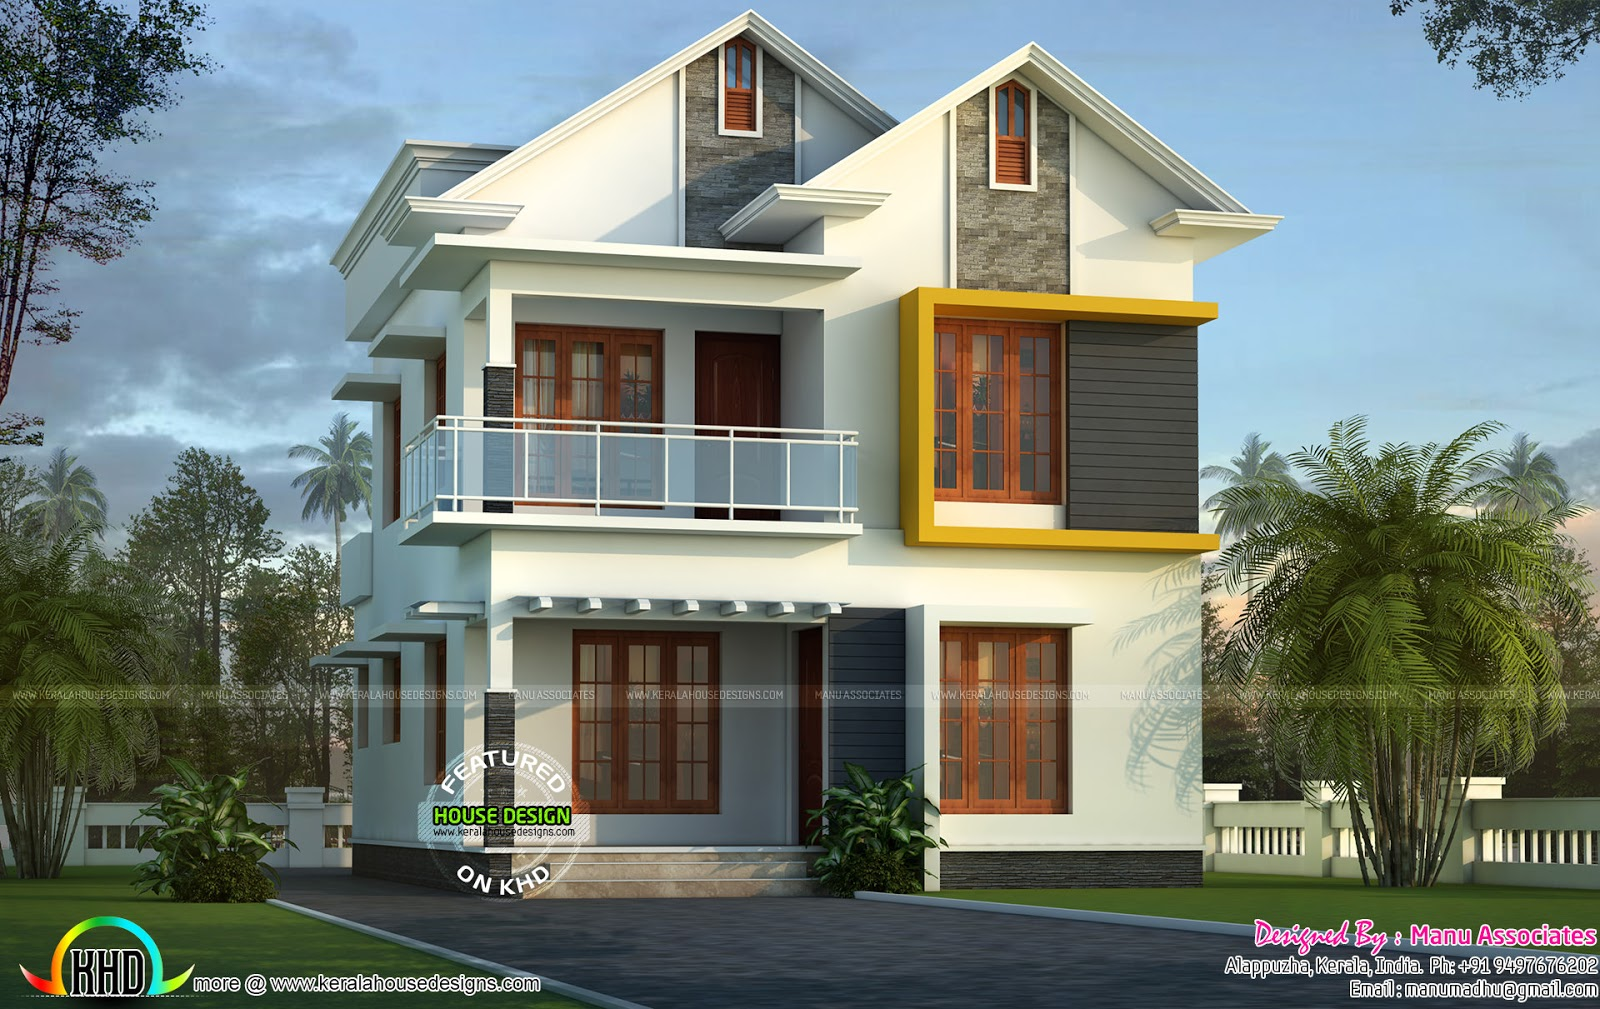 Cute small Kerala home design Kerala home design and floor plans